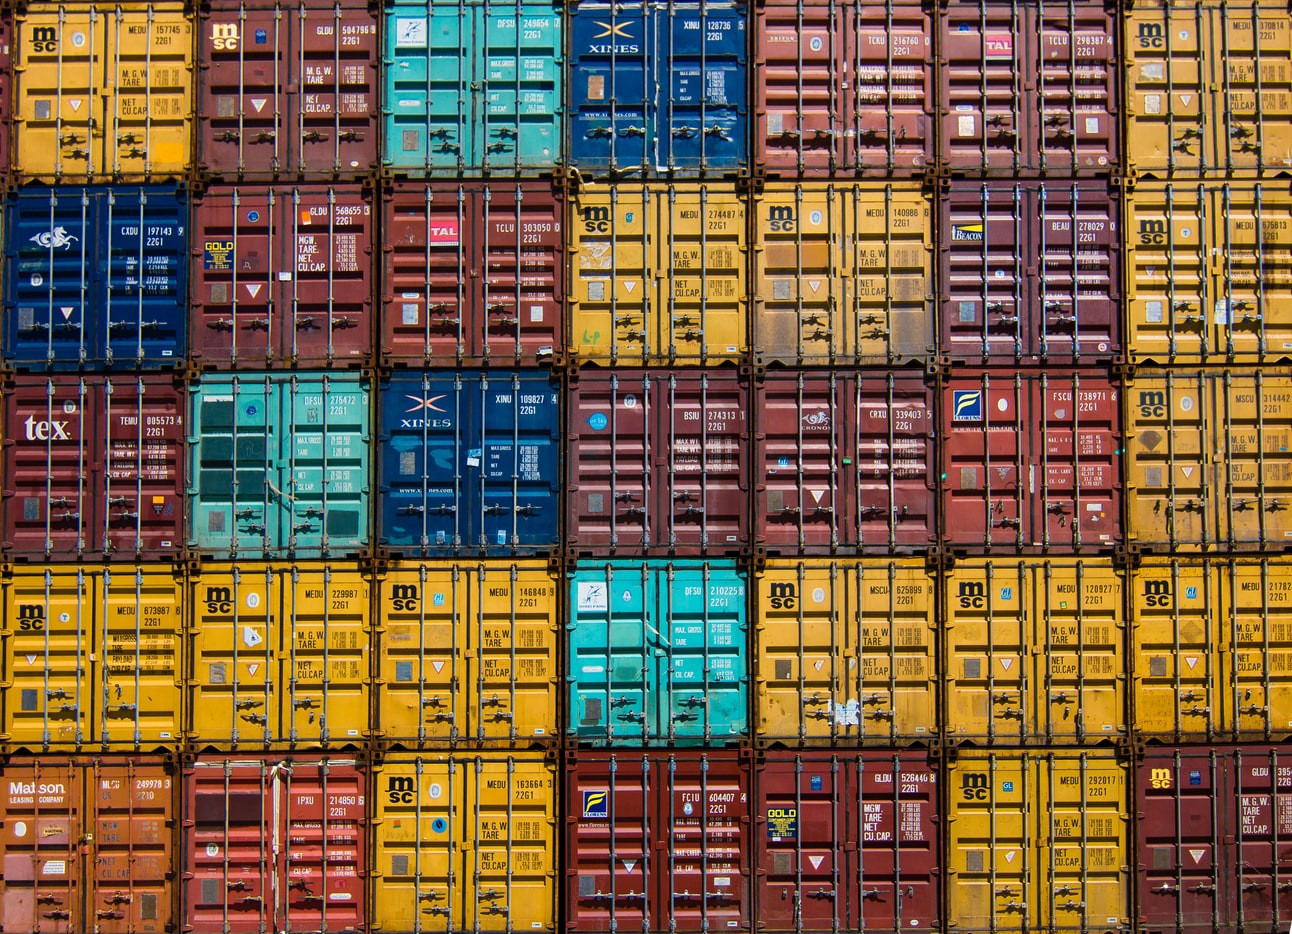 A stack of shipping containers